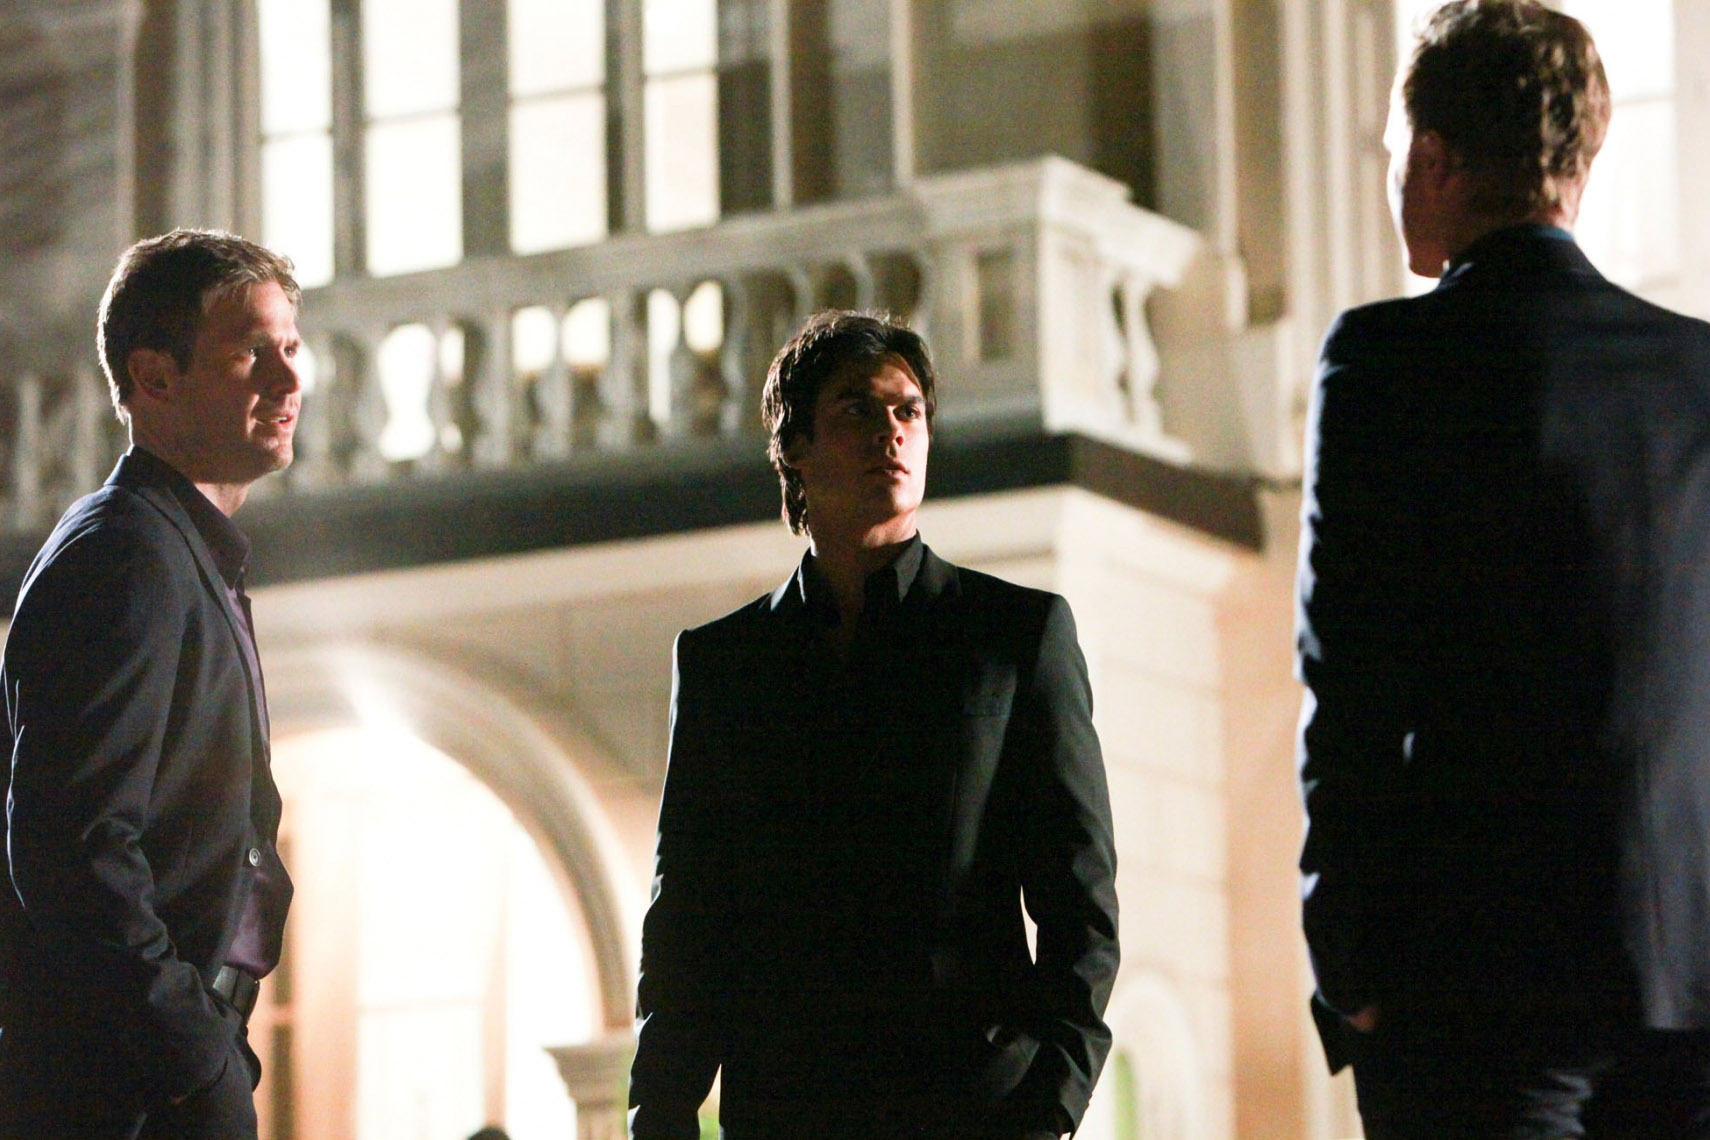 http://images2.fanpop.com/image/photos/11500000/1x18-Under-control-the-vampire-diaries-tv-show-11506067-1710-1140.jpg